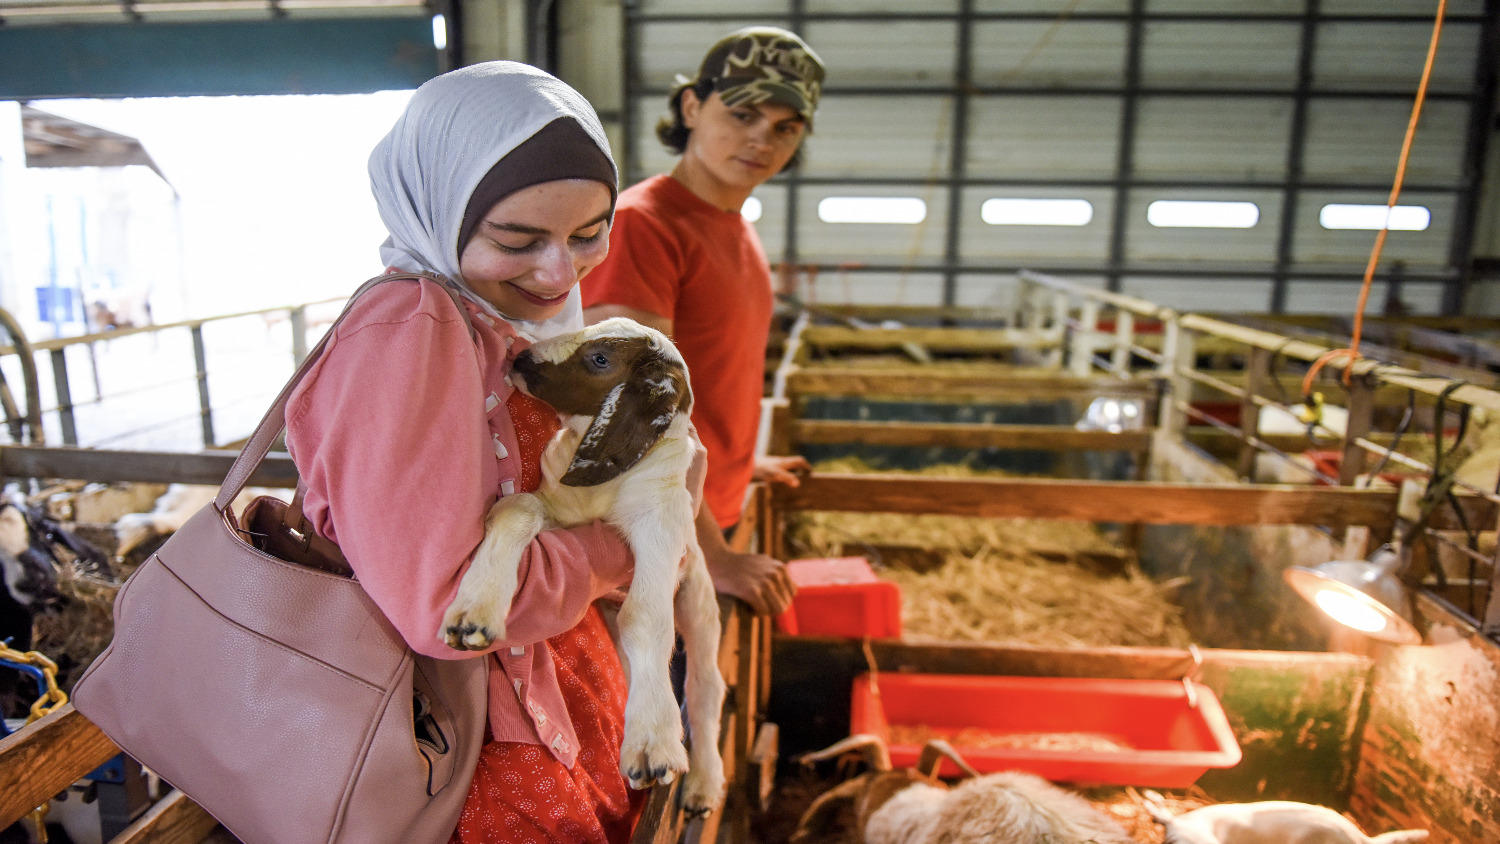 Woman wearing a hijab cuddling a baby goat in her arms